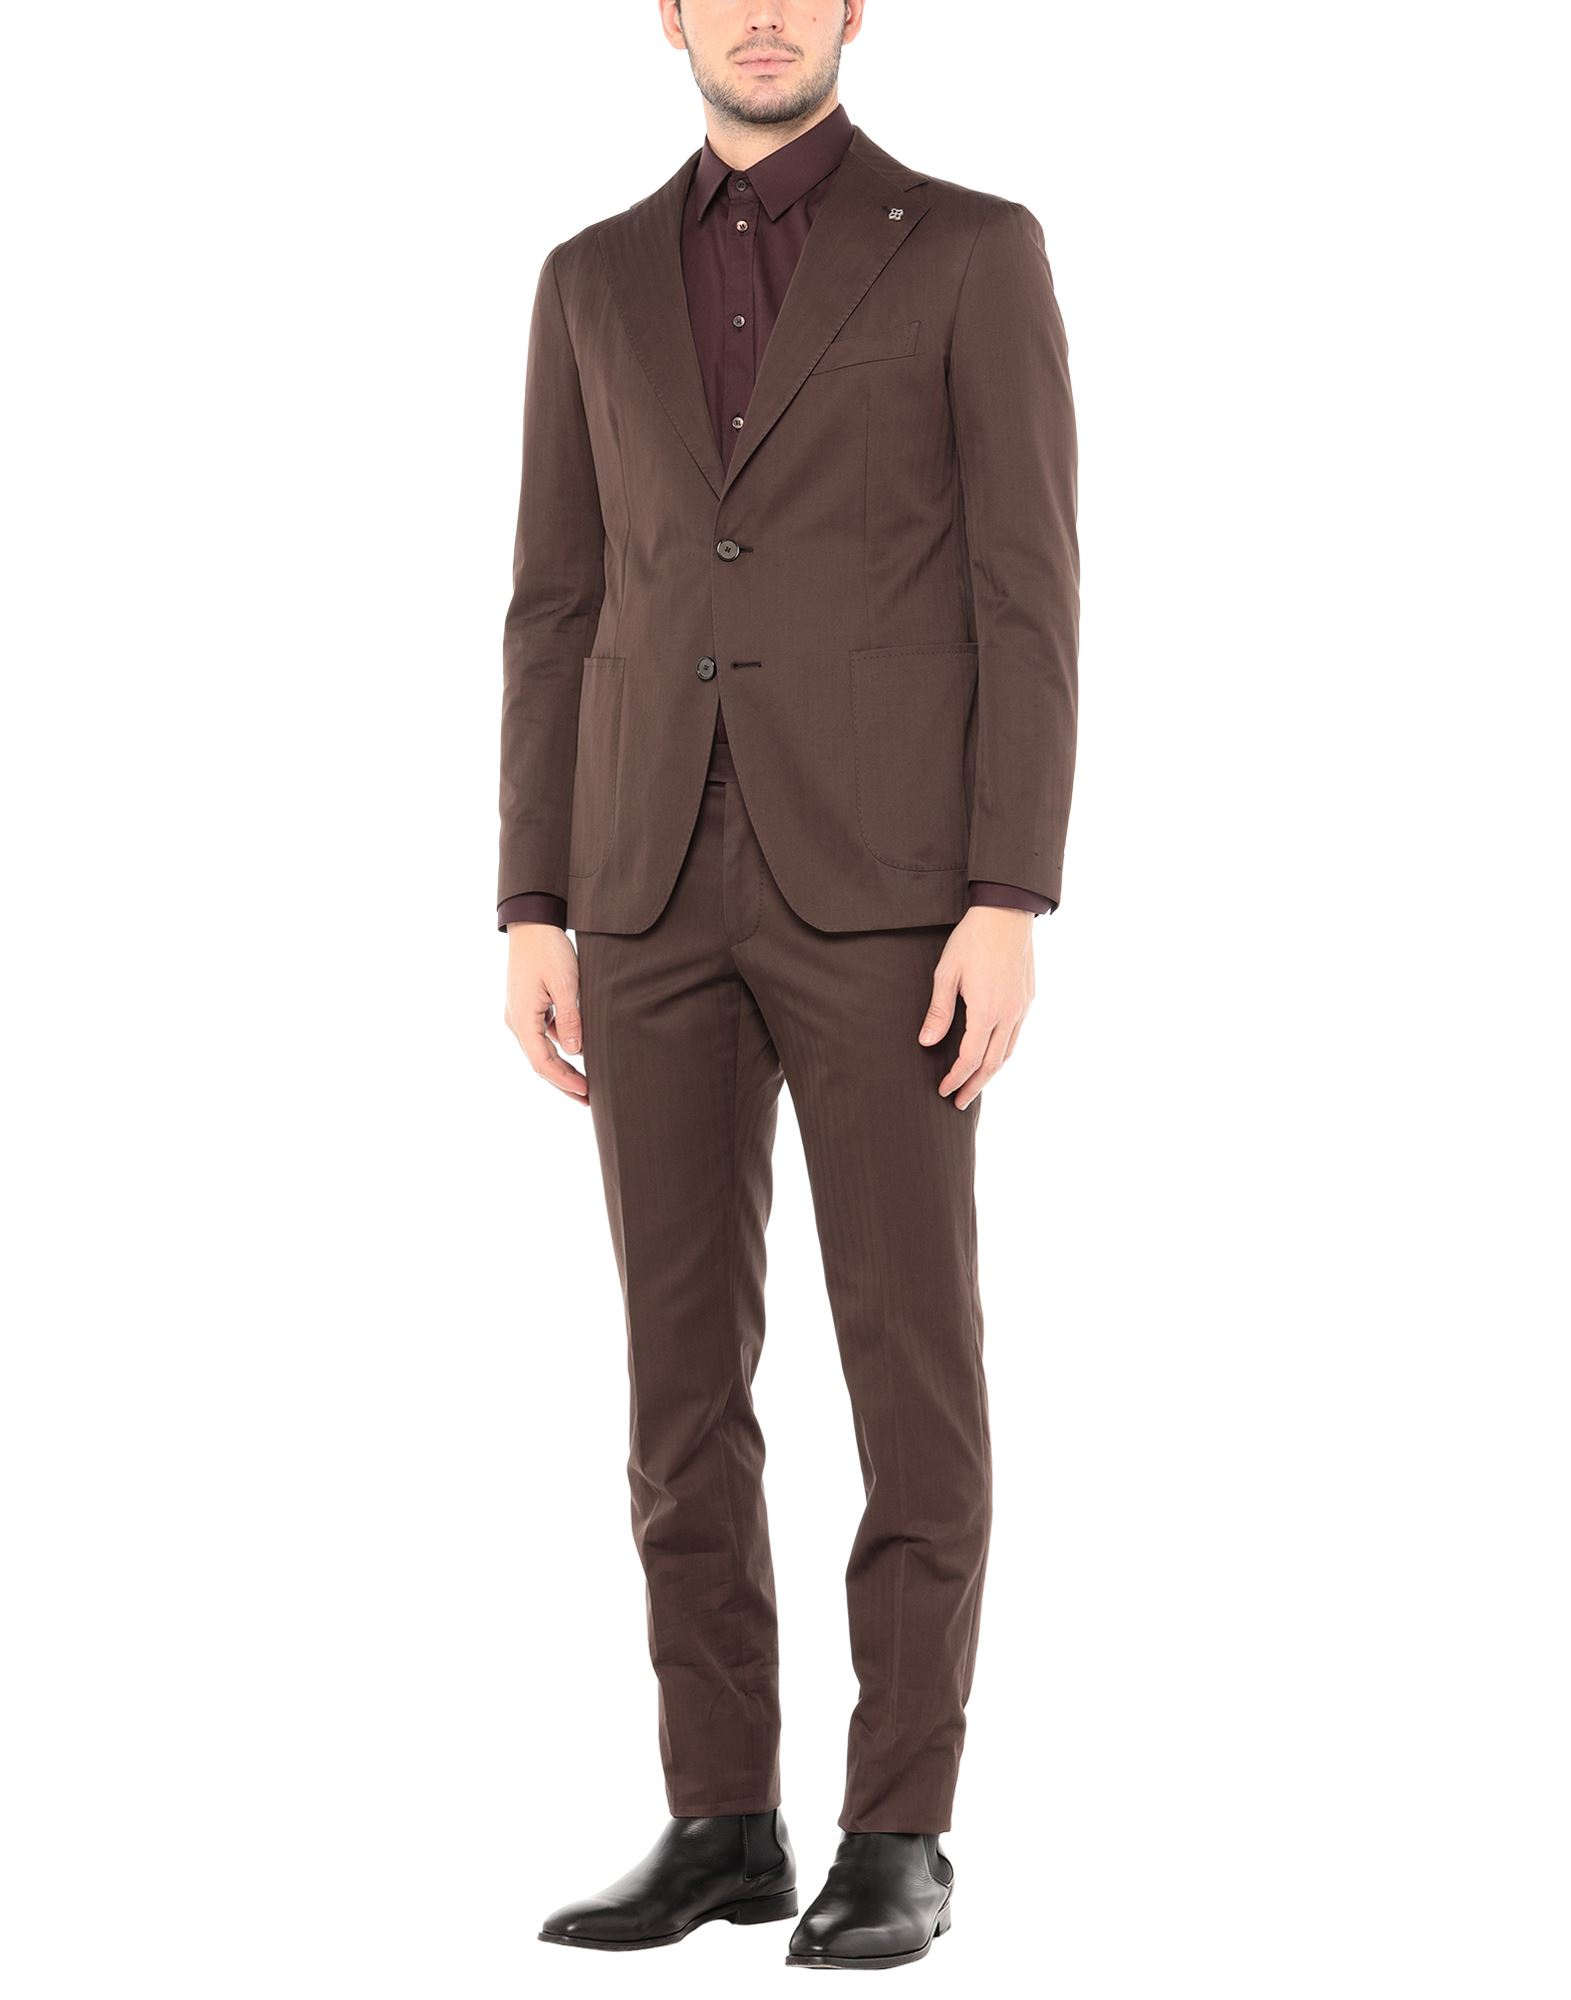 TAGLIATORE Suits. plain weave, brooch, basic solid color, lapel collar, long sleeves, single-breasted, multipockets, mid rise, button closing, single chest pocket, four internal pockets, semi-lined, button, zip. 100% Cotton